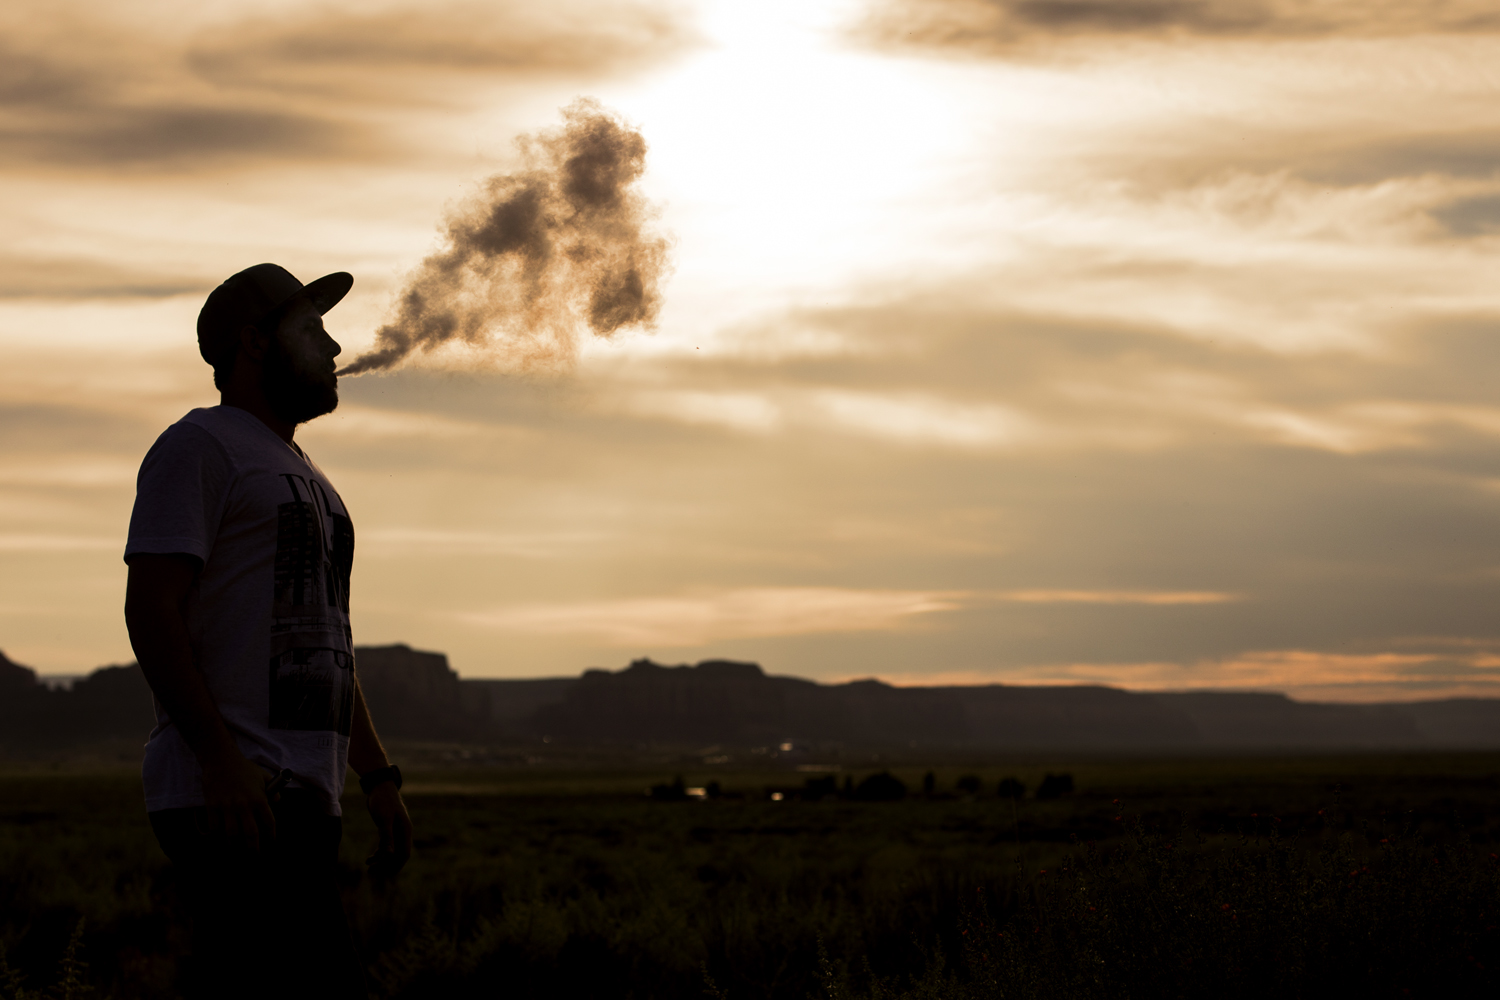 Andrew Scherf vaping along a dirt road in Monument Valley  Canon 6D, Canon 50mm f/1.4 (iso 160, f/4, 1/4000s)